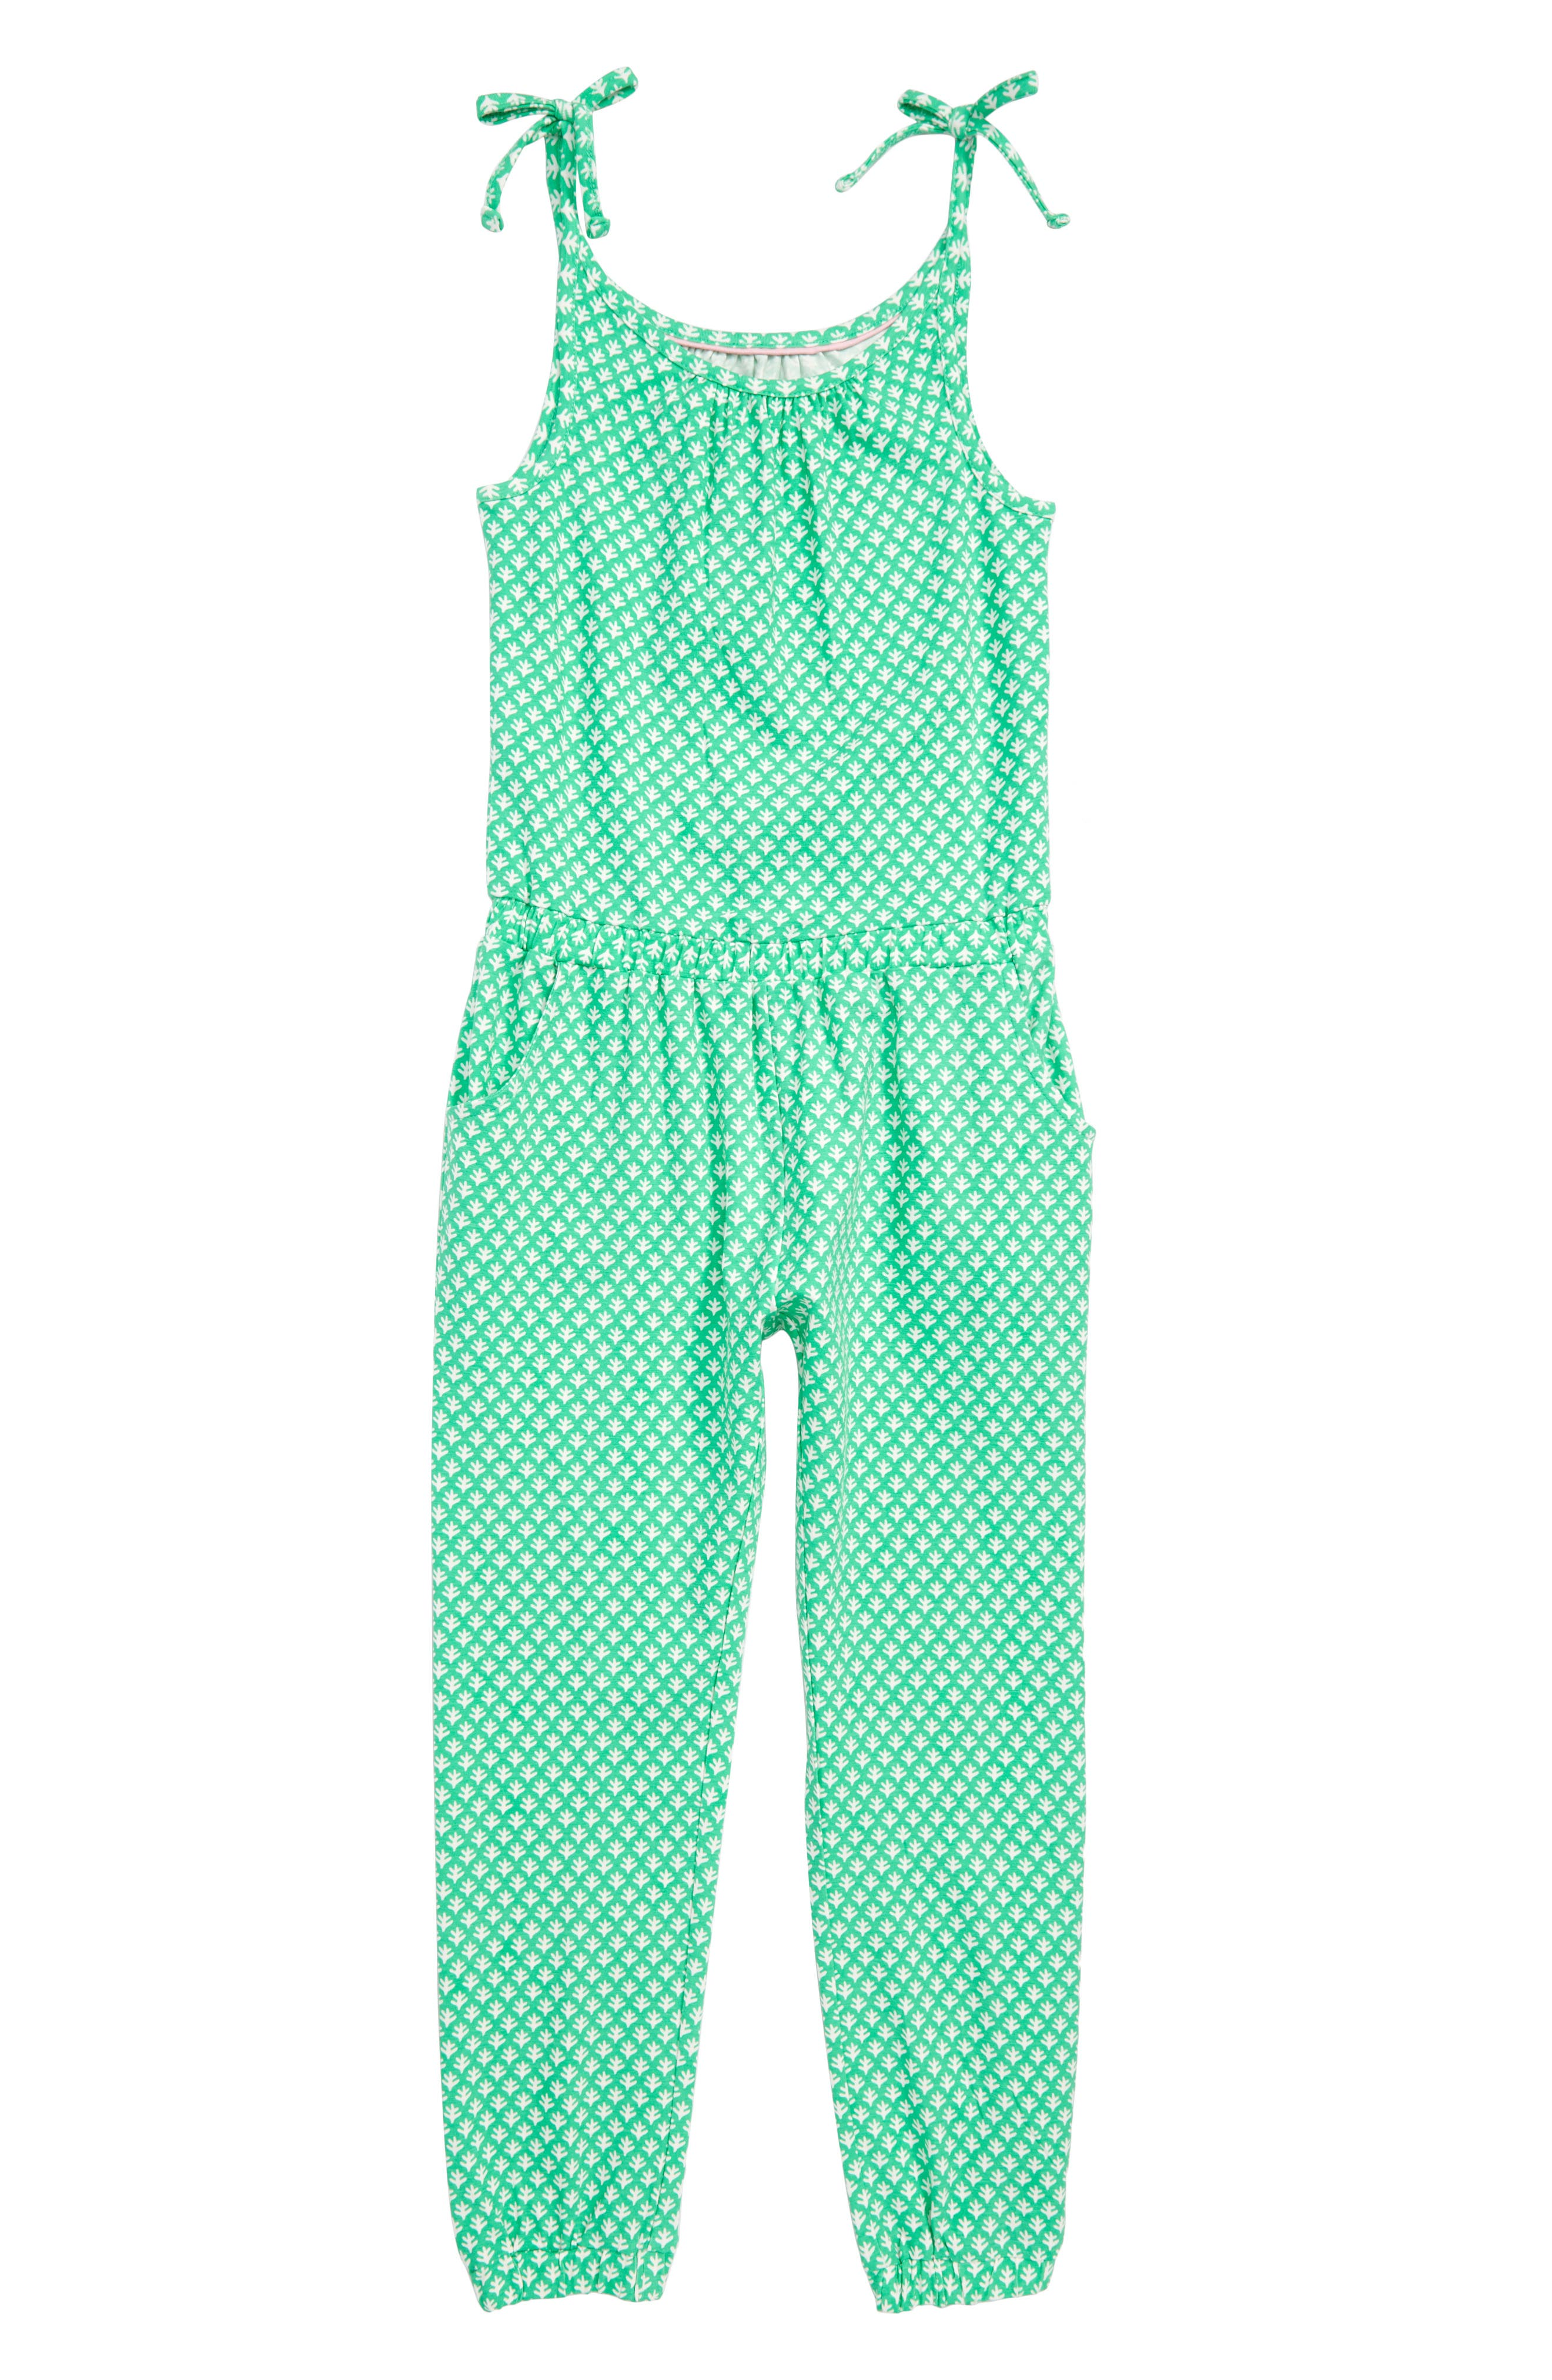 Jersey Jumpsuit,                             Main thumbnail 1, color,                             Peppermint Cream/ Ivory Geo